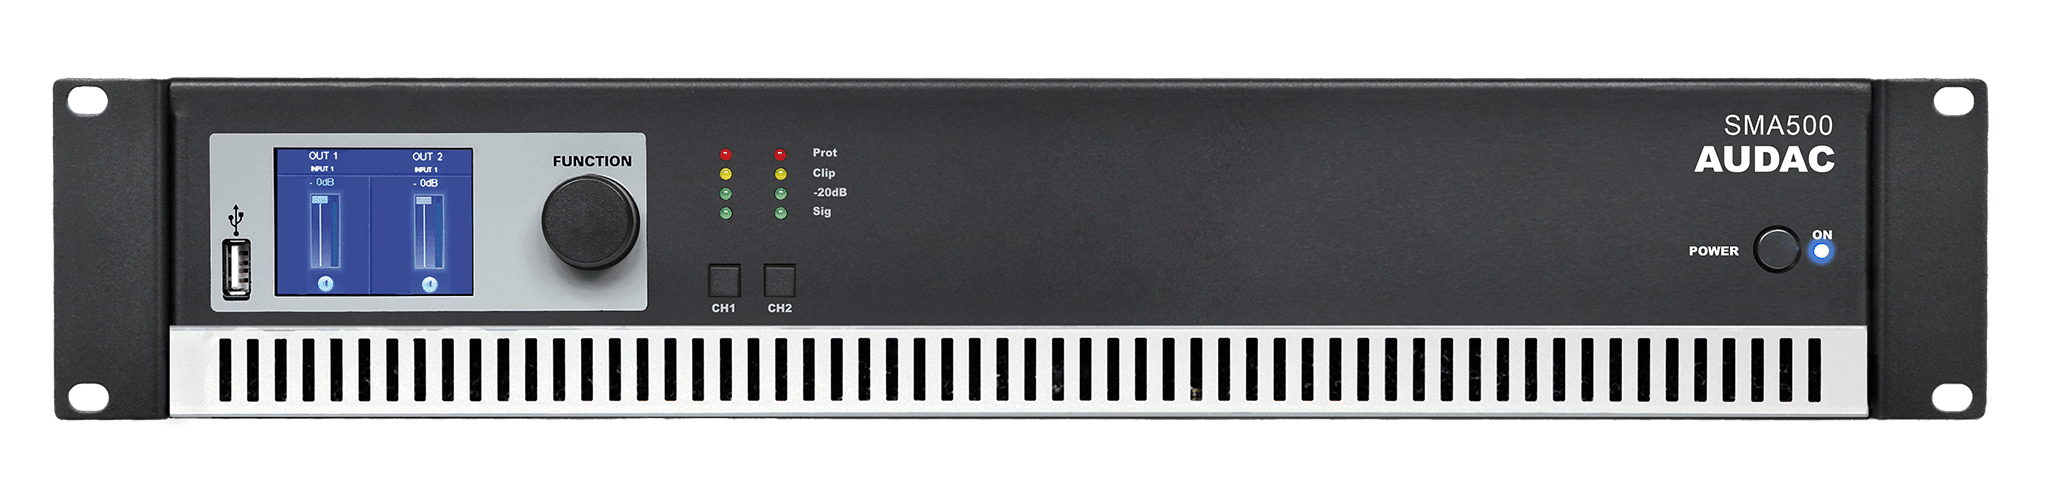 SMA500 - WaveDynamics™ dual-channel power amplifier 2 x 500W